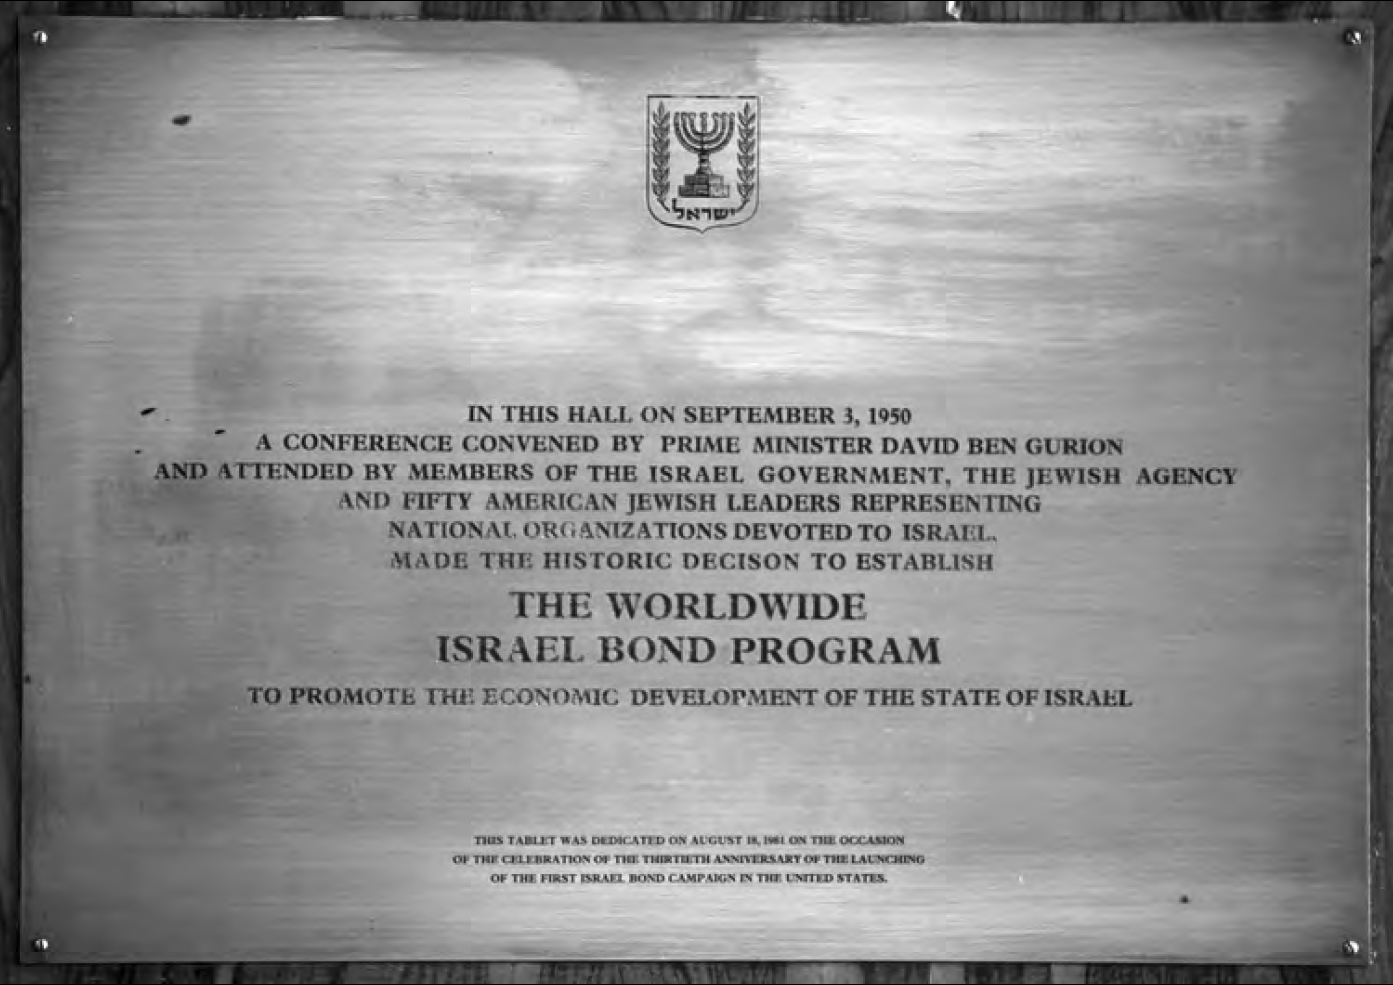 A commemorative plaque displayed in Jerusalem's King David Hotel marks the site of the inaugural conference led by former Prime Minister David Ben-Gurion in September 1950, which resulted in the founding of Israel Bonds, a $40 billion success story spanning over 60 years